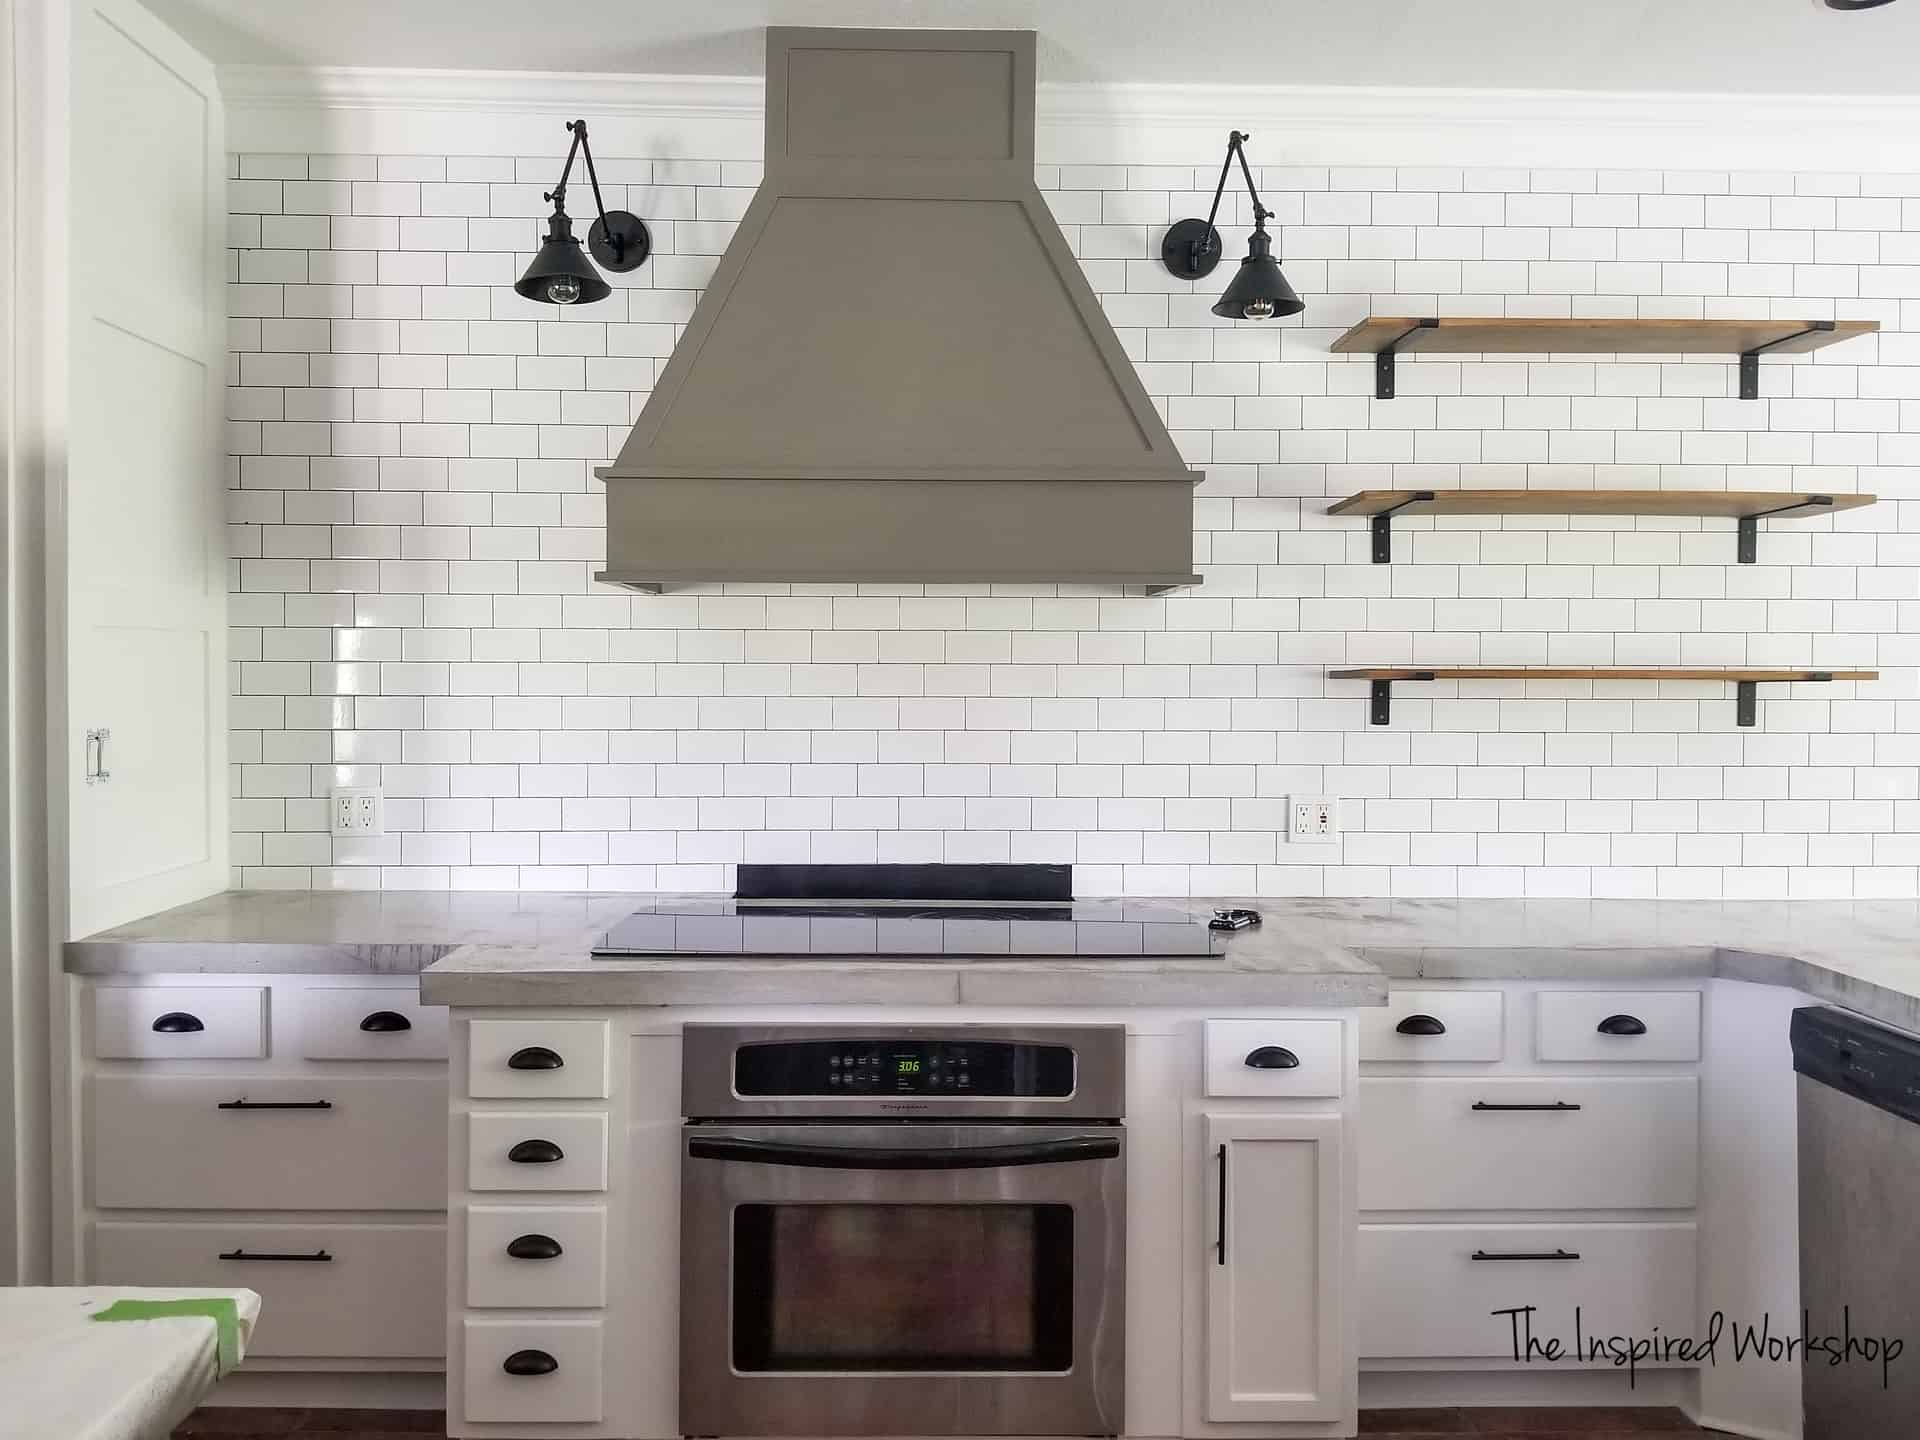 - How To Tile A Kitchen Wall – The Inspired Workshop